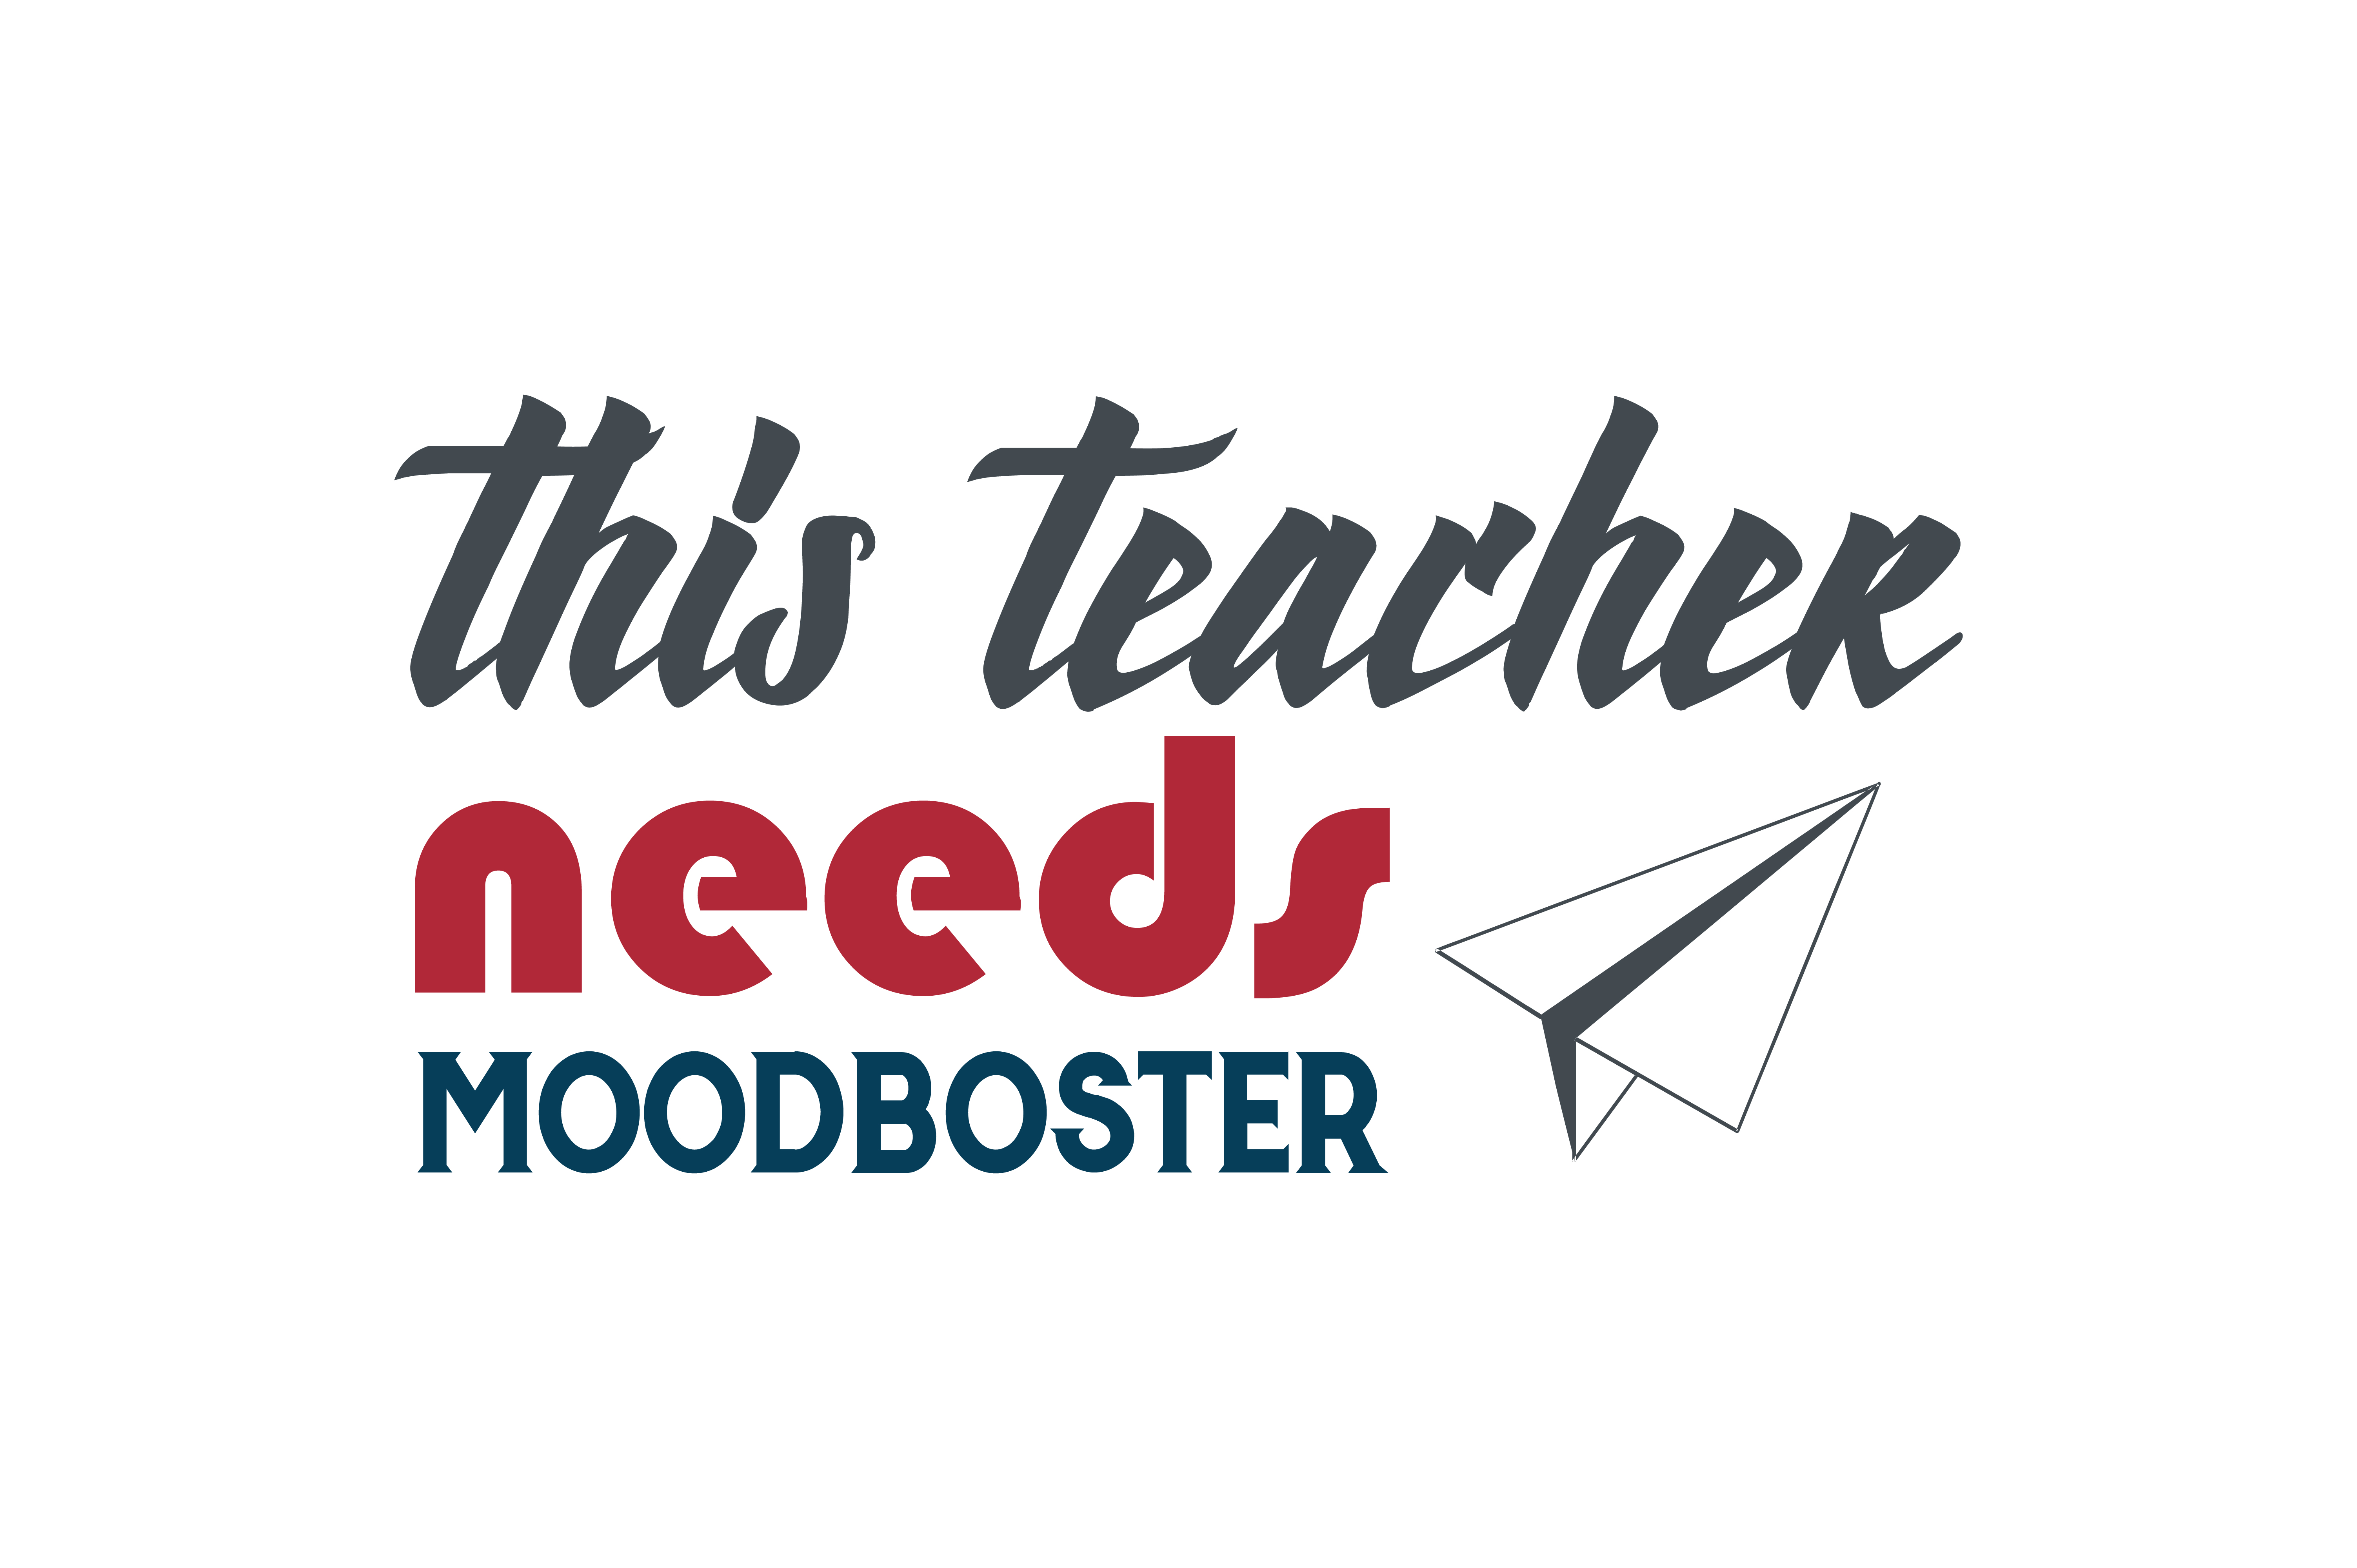 Download Free This Teacher Needs Moodboster Quote Svg Cut Graphic By Thelucky for Cricut Explore, Silhouette and other cutting machines.